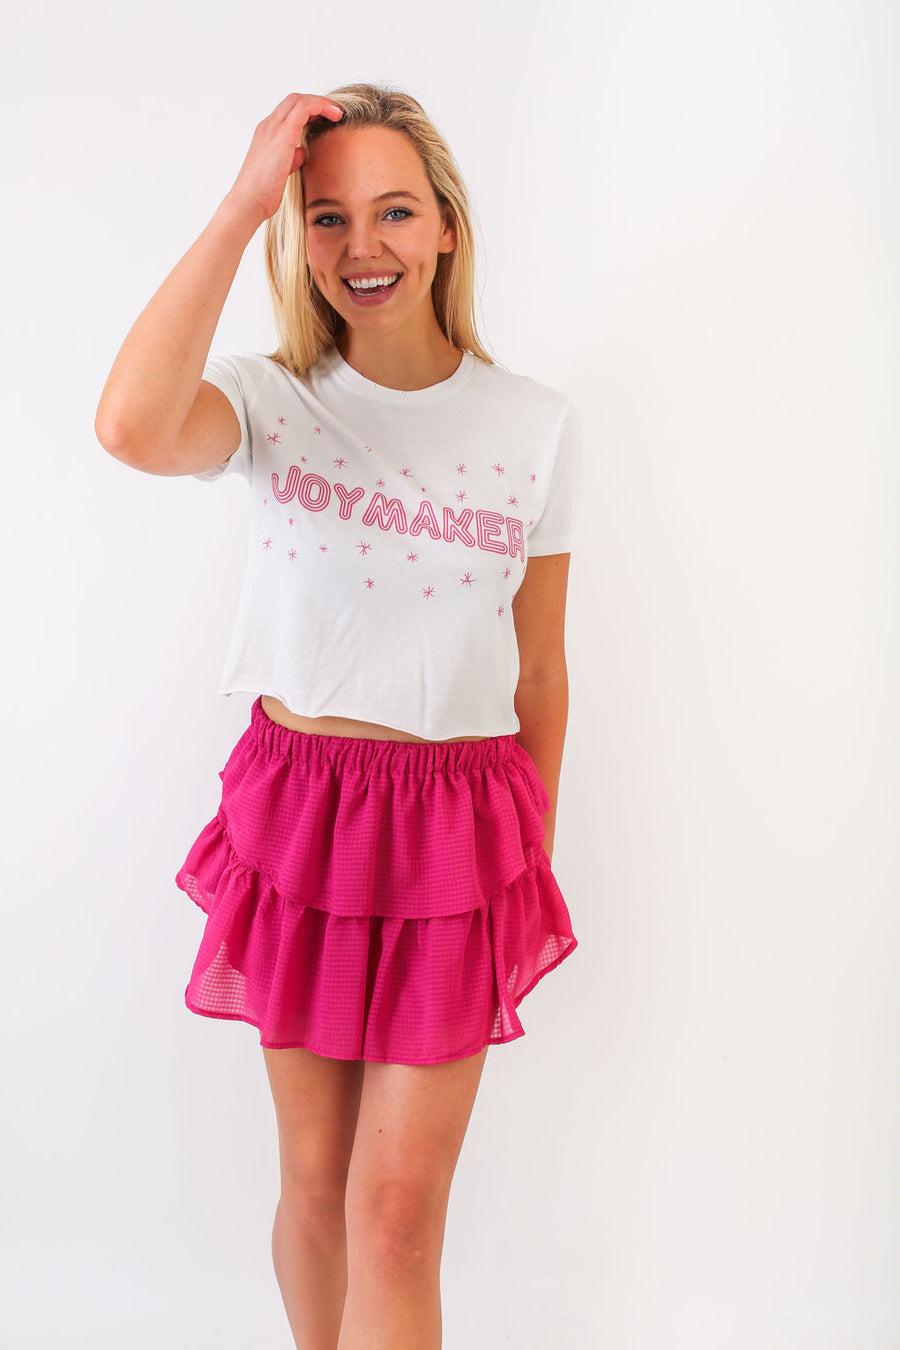 CROP TOP PINK JOYMAKER